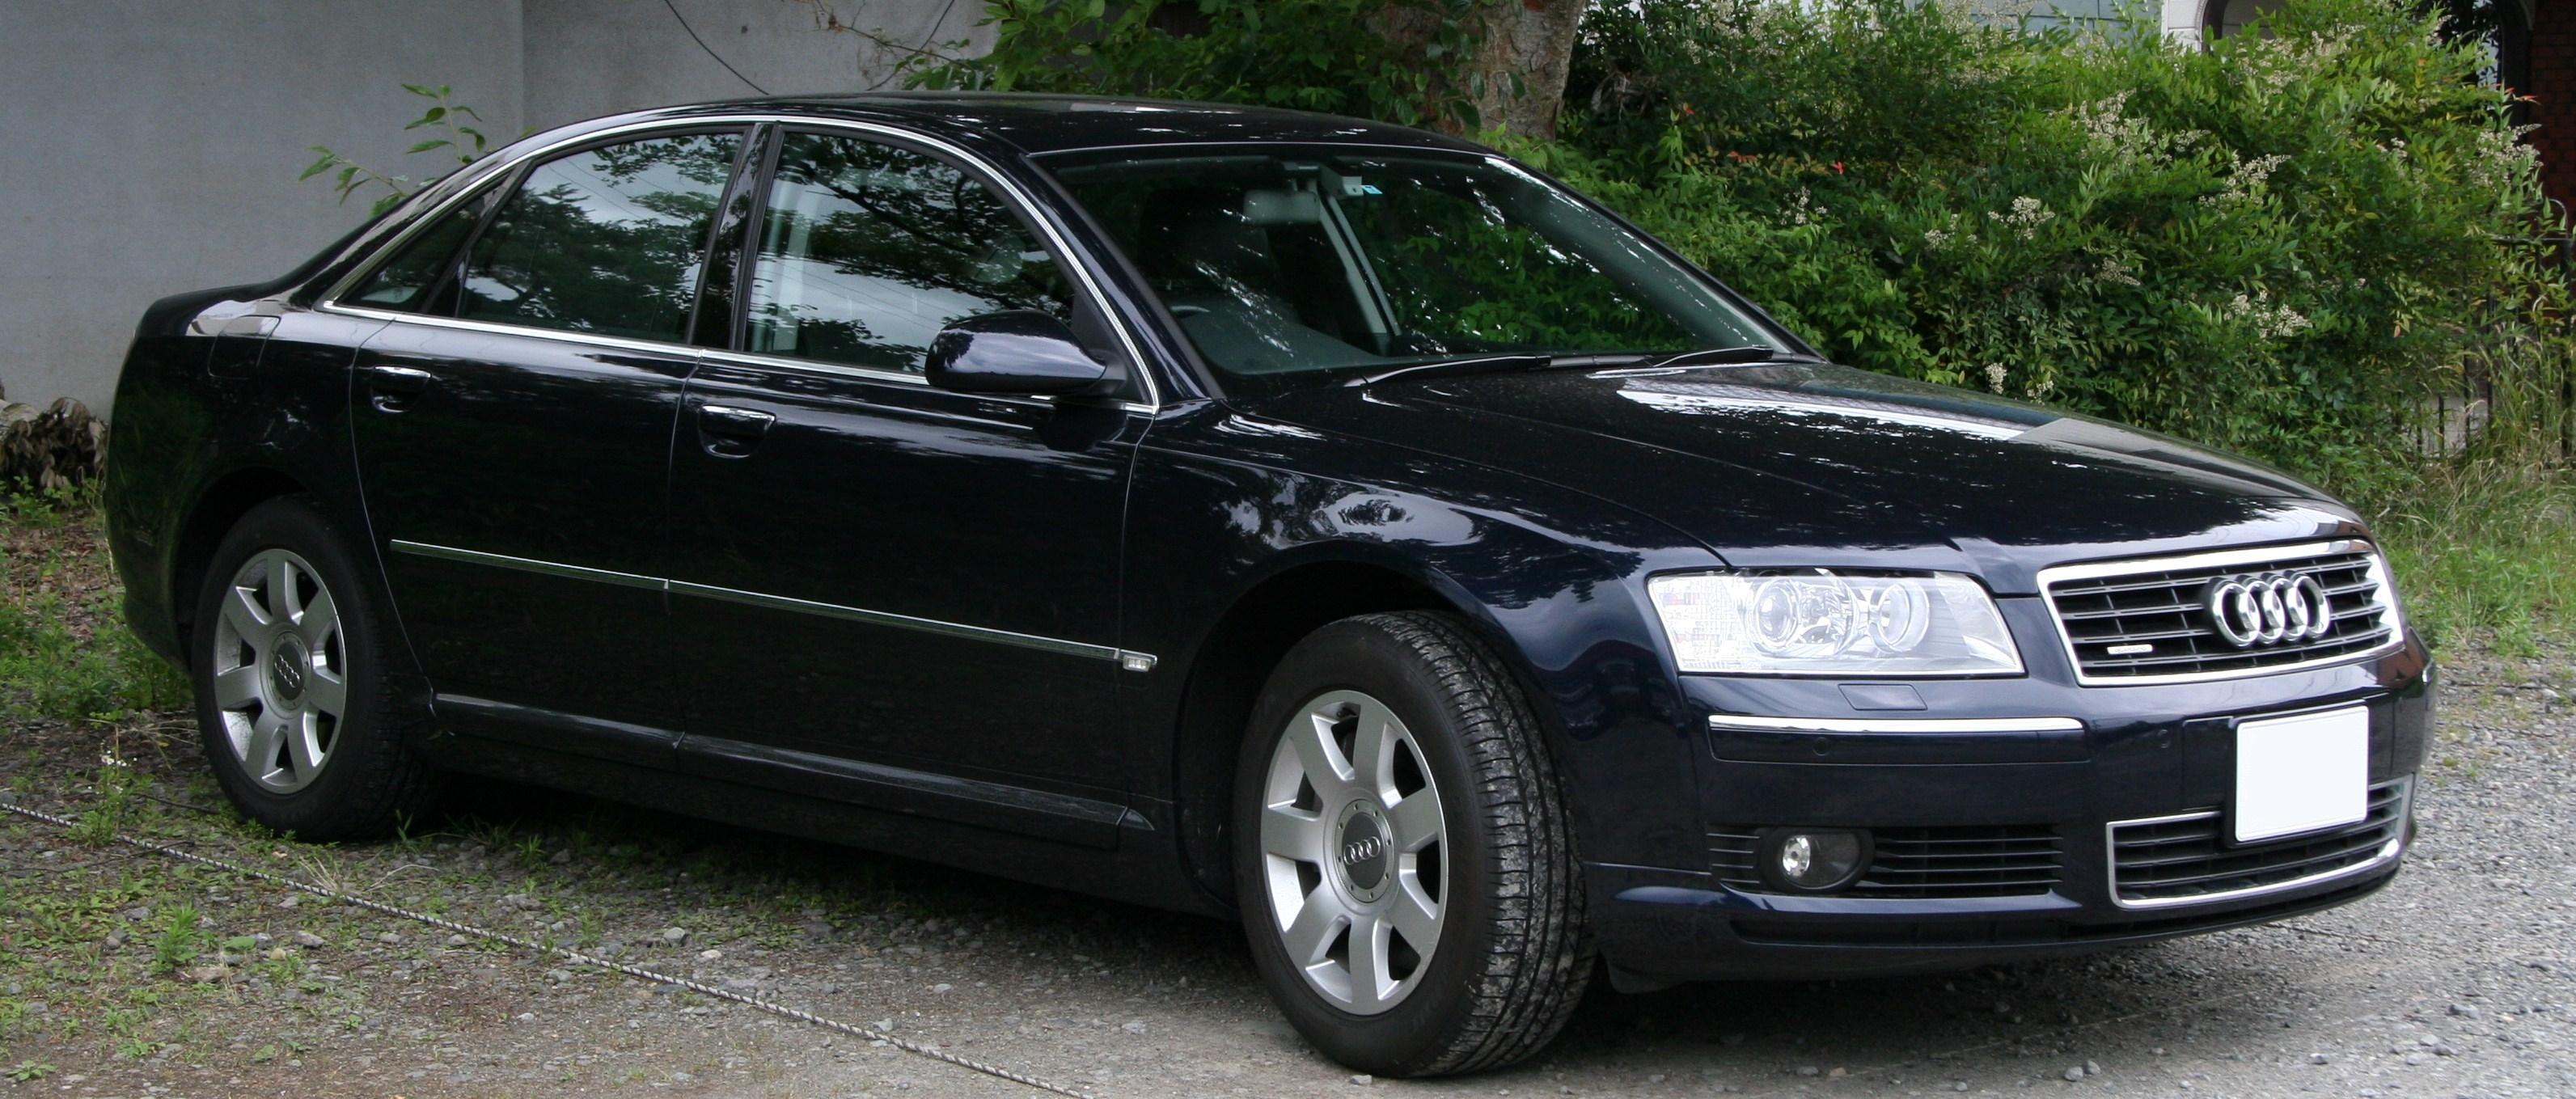 2005 audi a8 image 10. Black Bedroom Furniture Sets. Home Design Ideas